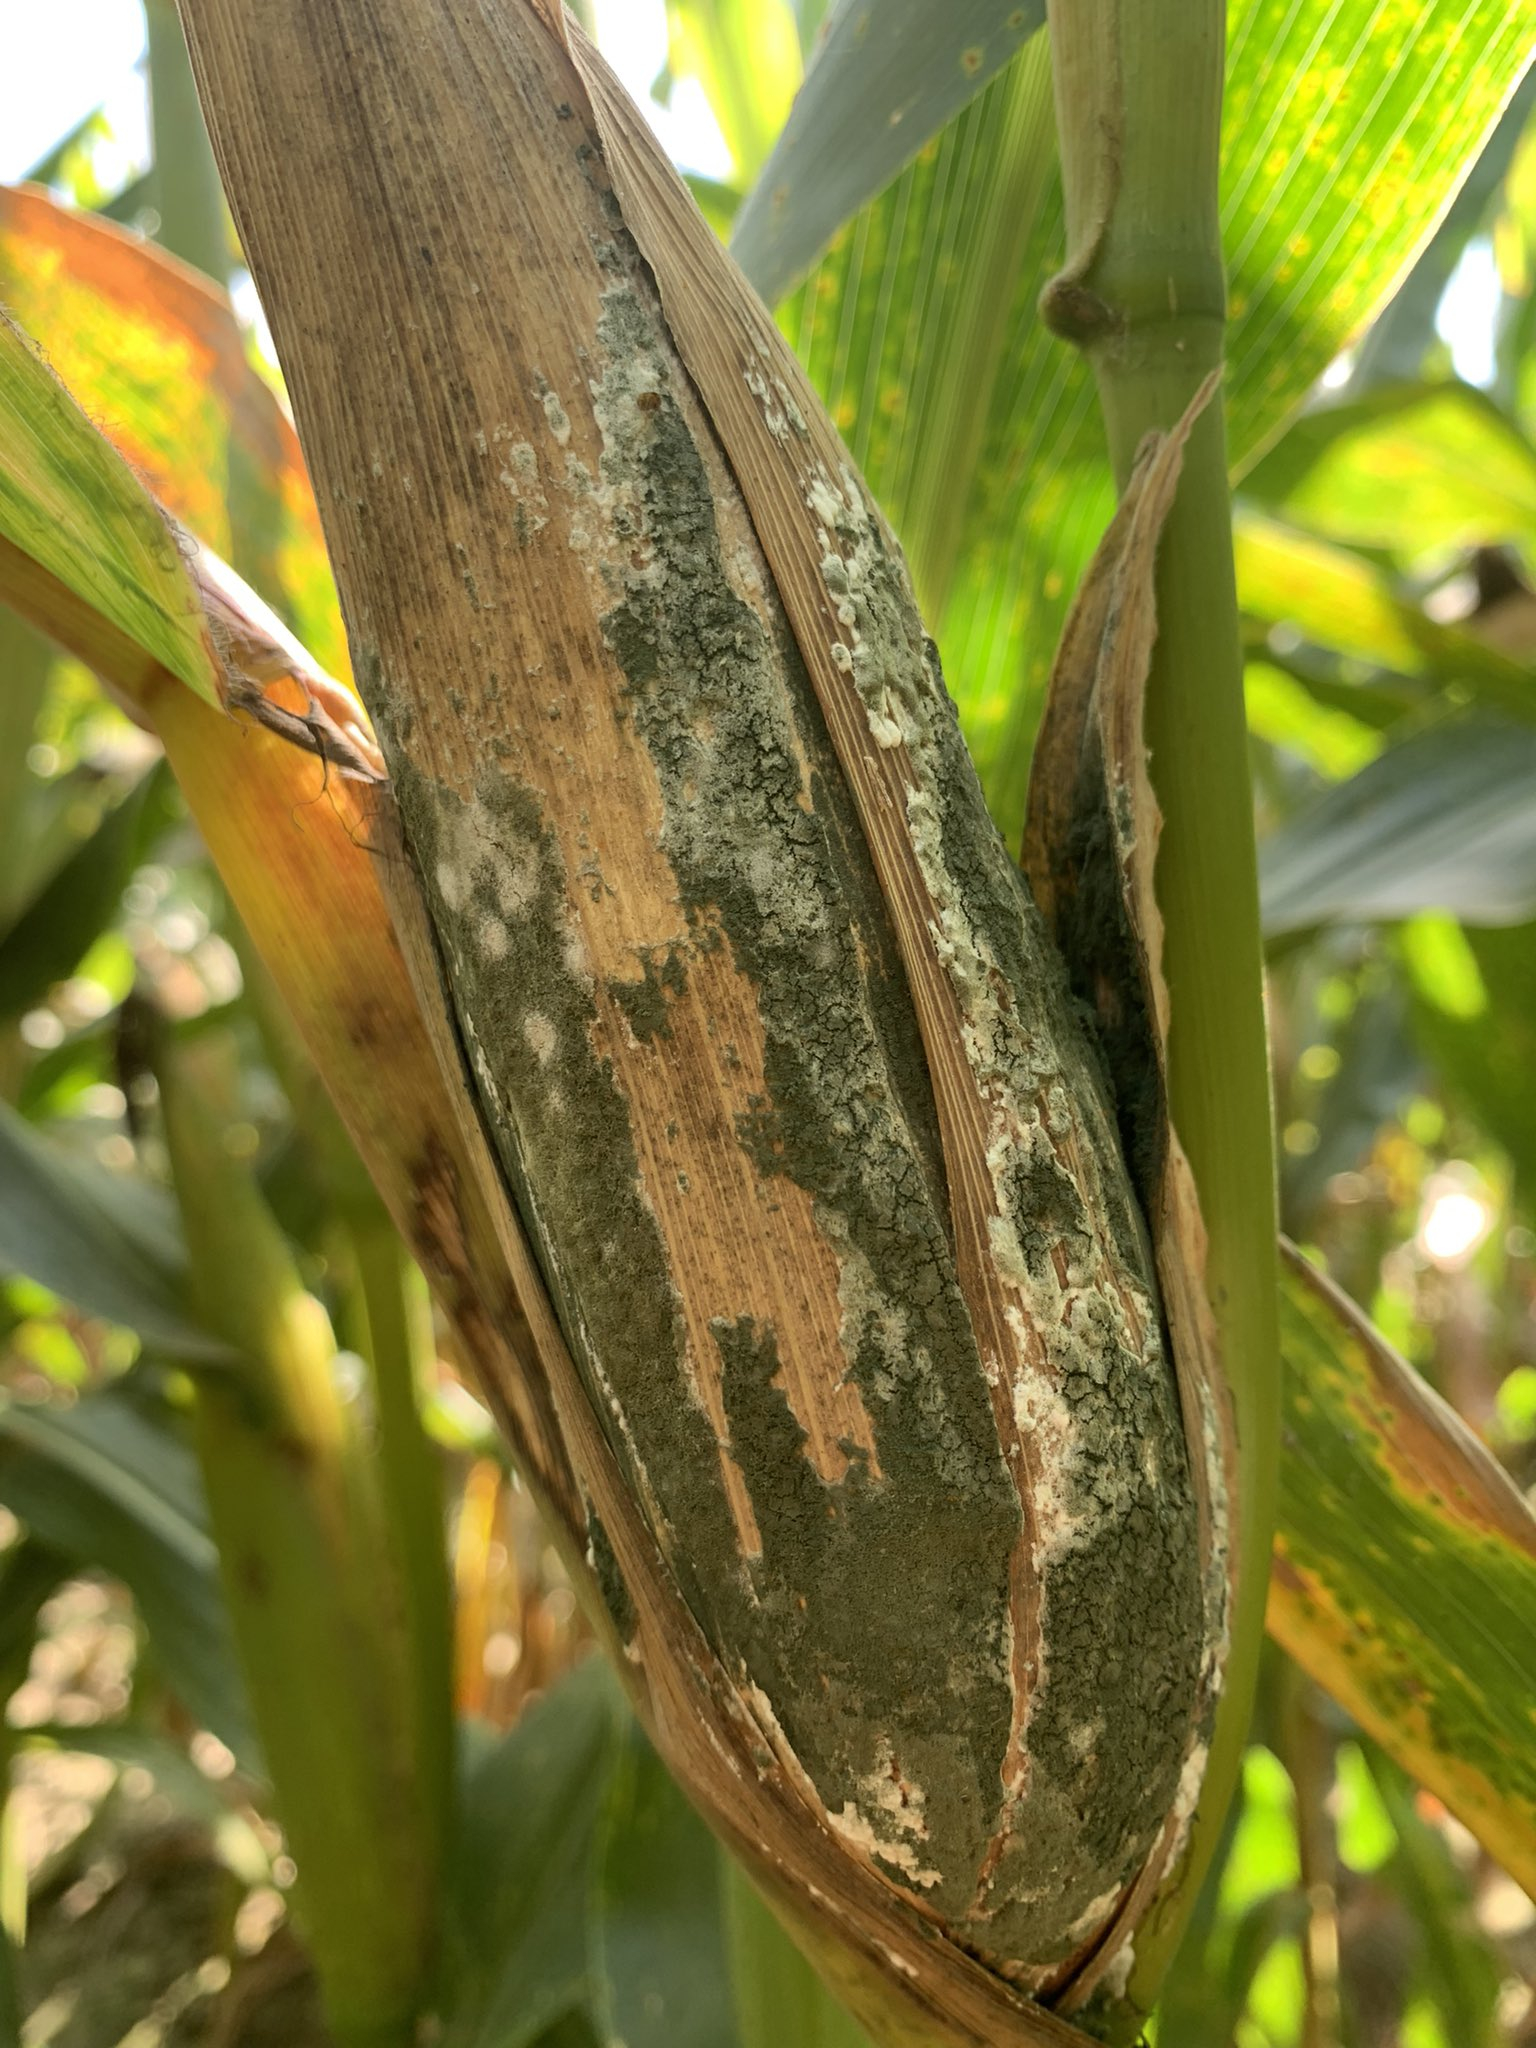 Trichoderma ear rot fungal growth on the husk.